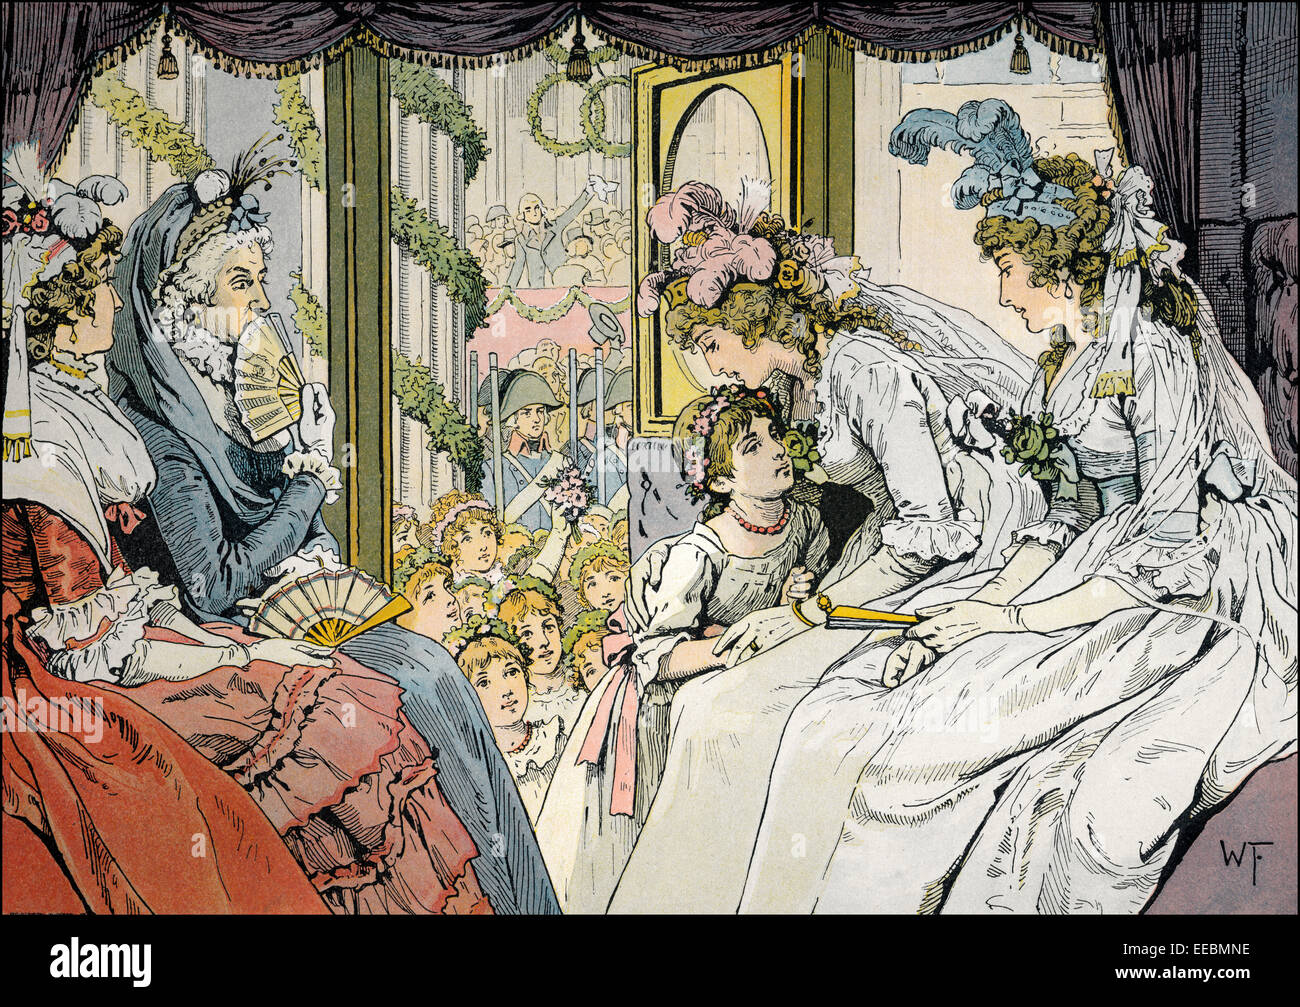 Welcoming the princess bride by blooming girls, Unter den Linden, Berlin, Germany, 22. December 1793, Louise of Stock Photo